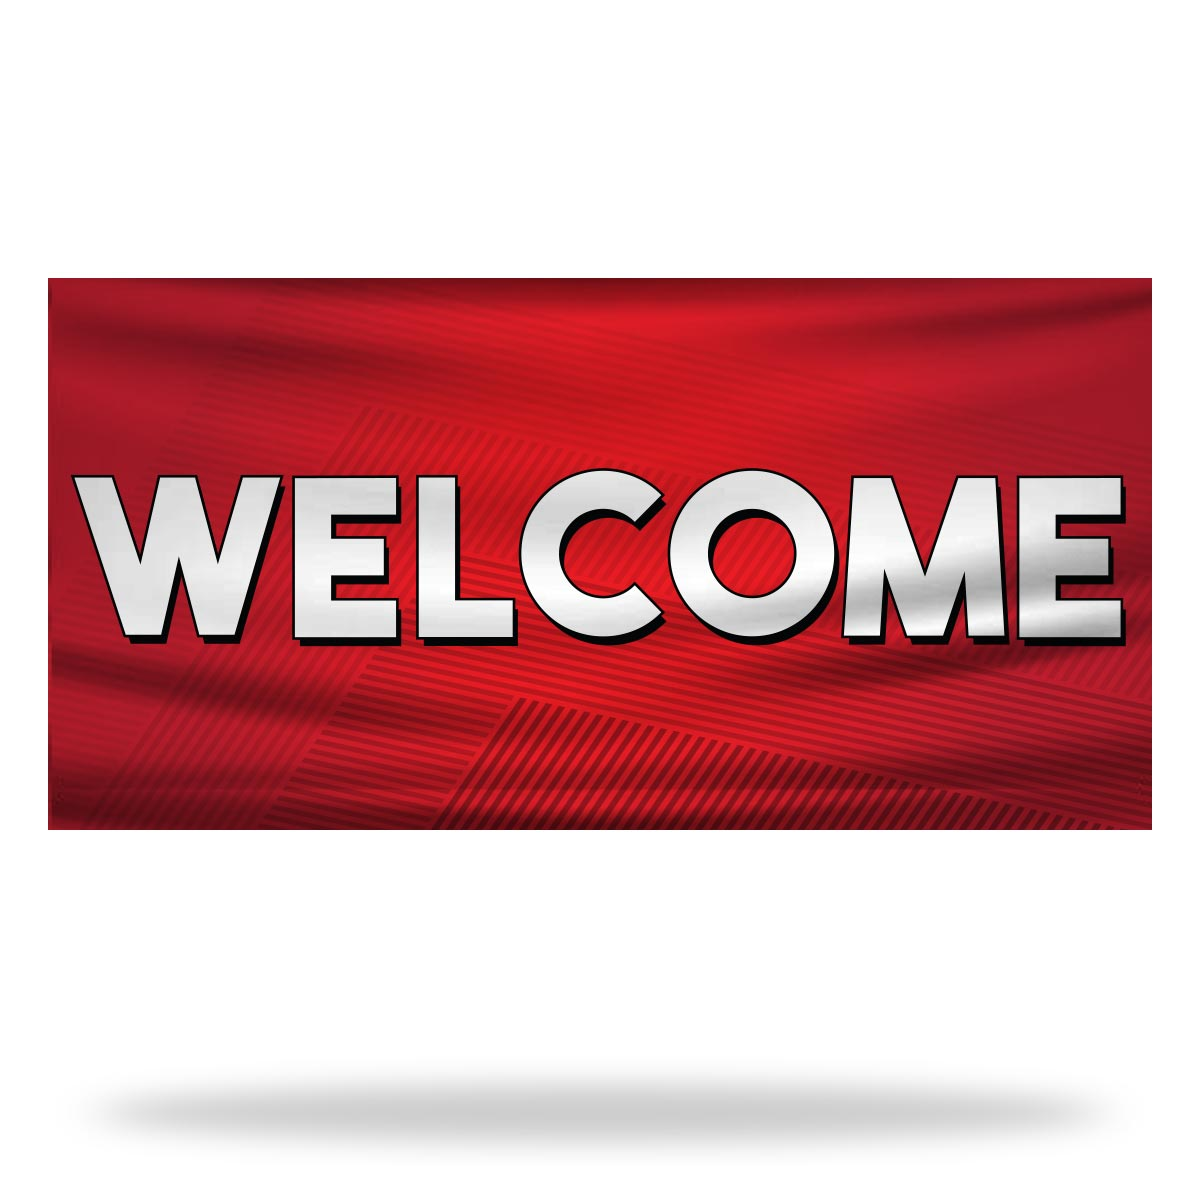 Welcome Flags & Banners Design 02